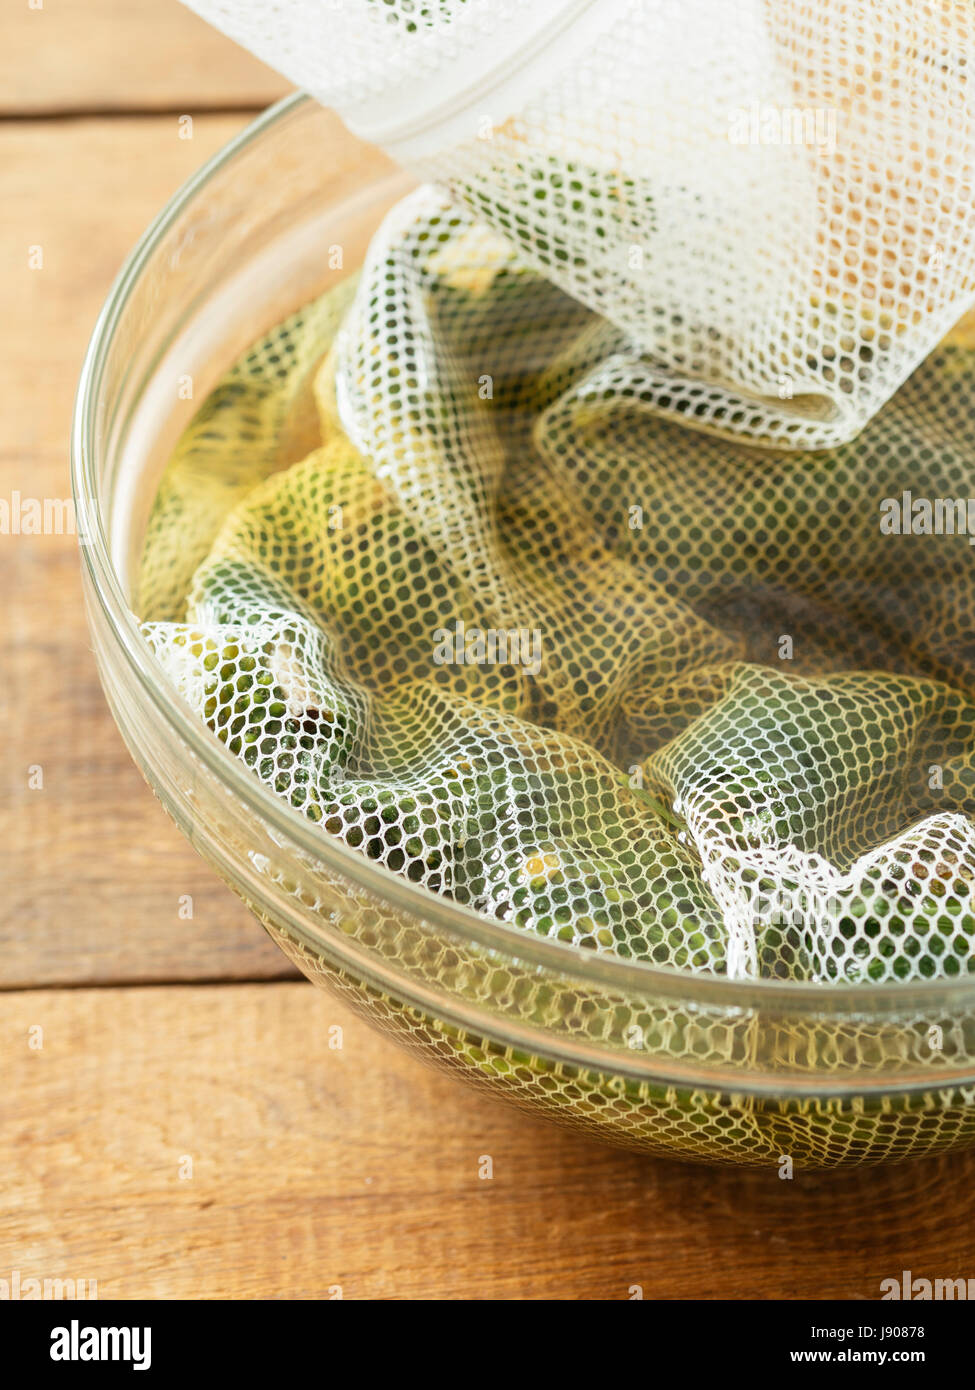 Shopped comfrey leaves in a wash net soaking in hot water to make comfrey tea. - Stock Image